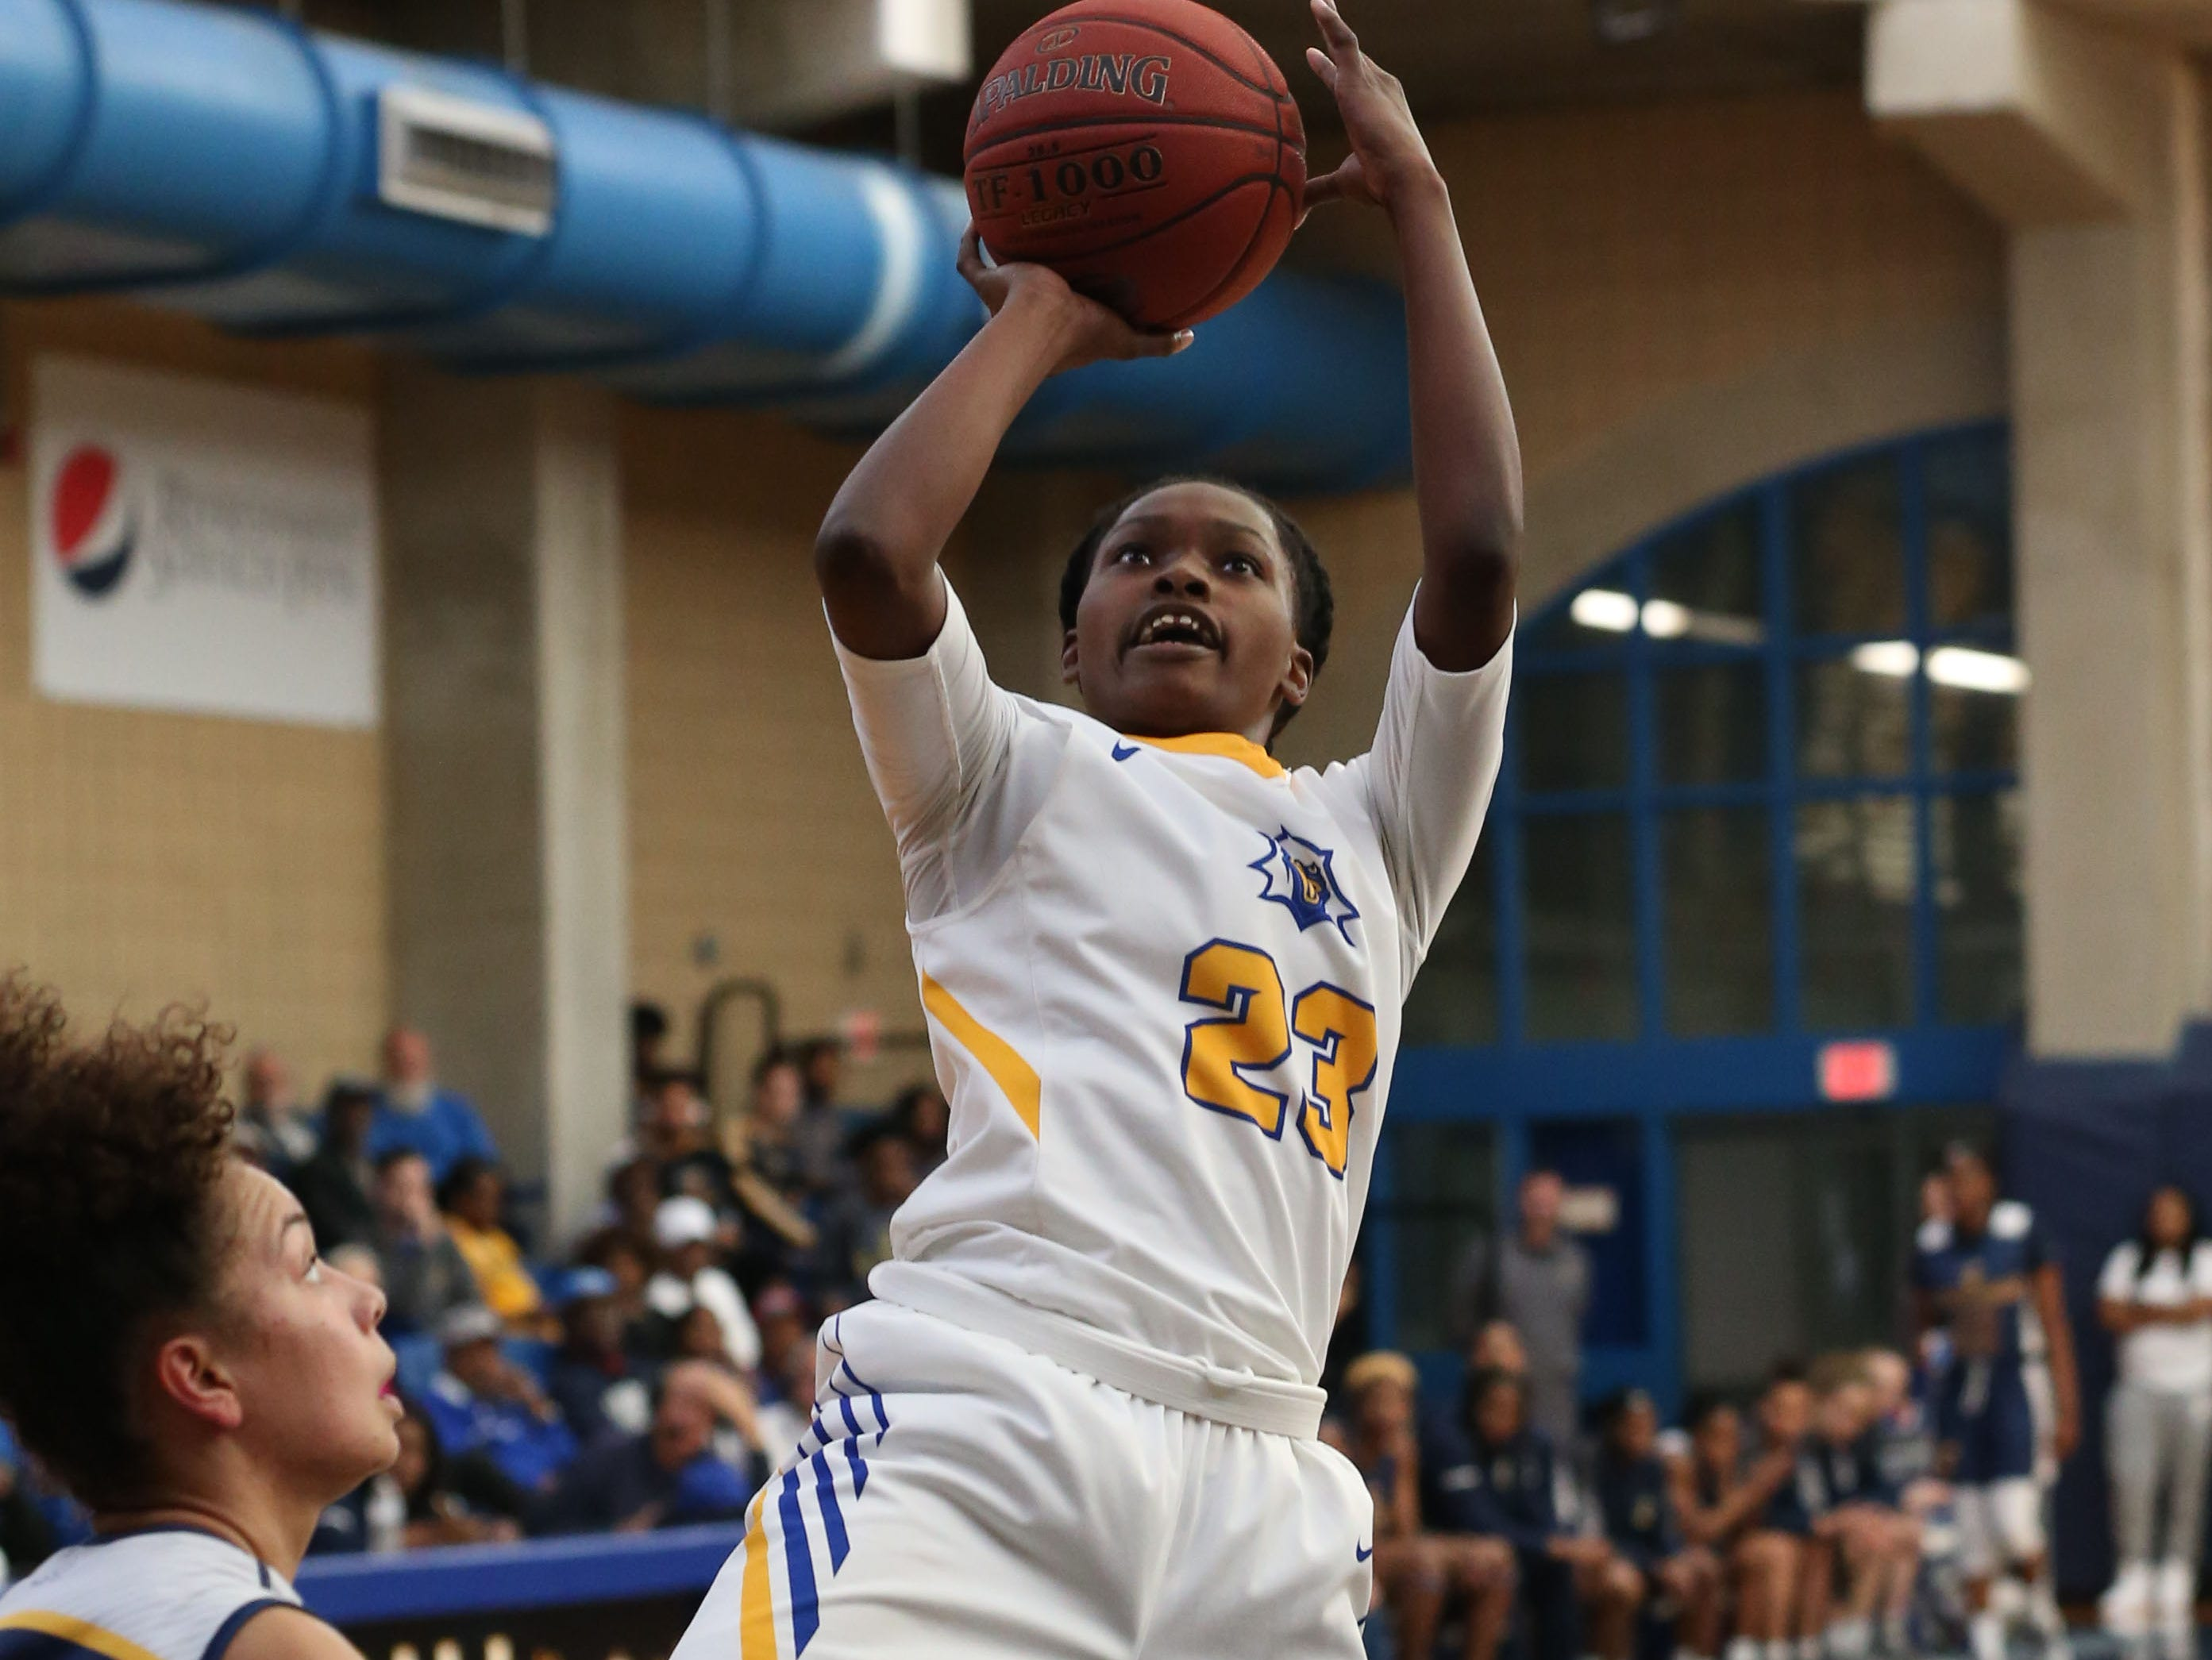 Tallahassee Community College Eagles guard Juliunn Redmond (23) shallots from inside the paint. The Tallahassee Community College Eagles host the Gulf Coast State College Commodores in a conference match-up in the Eagledome, Saturday, Jan. 5, 2019.